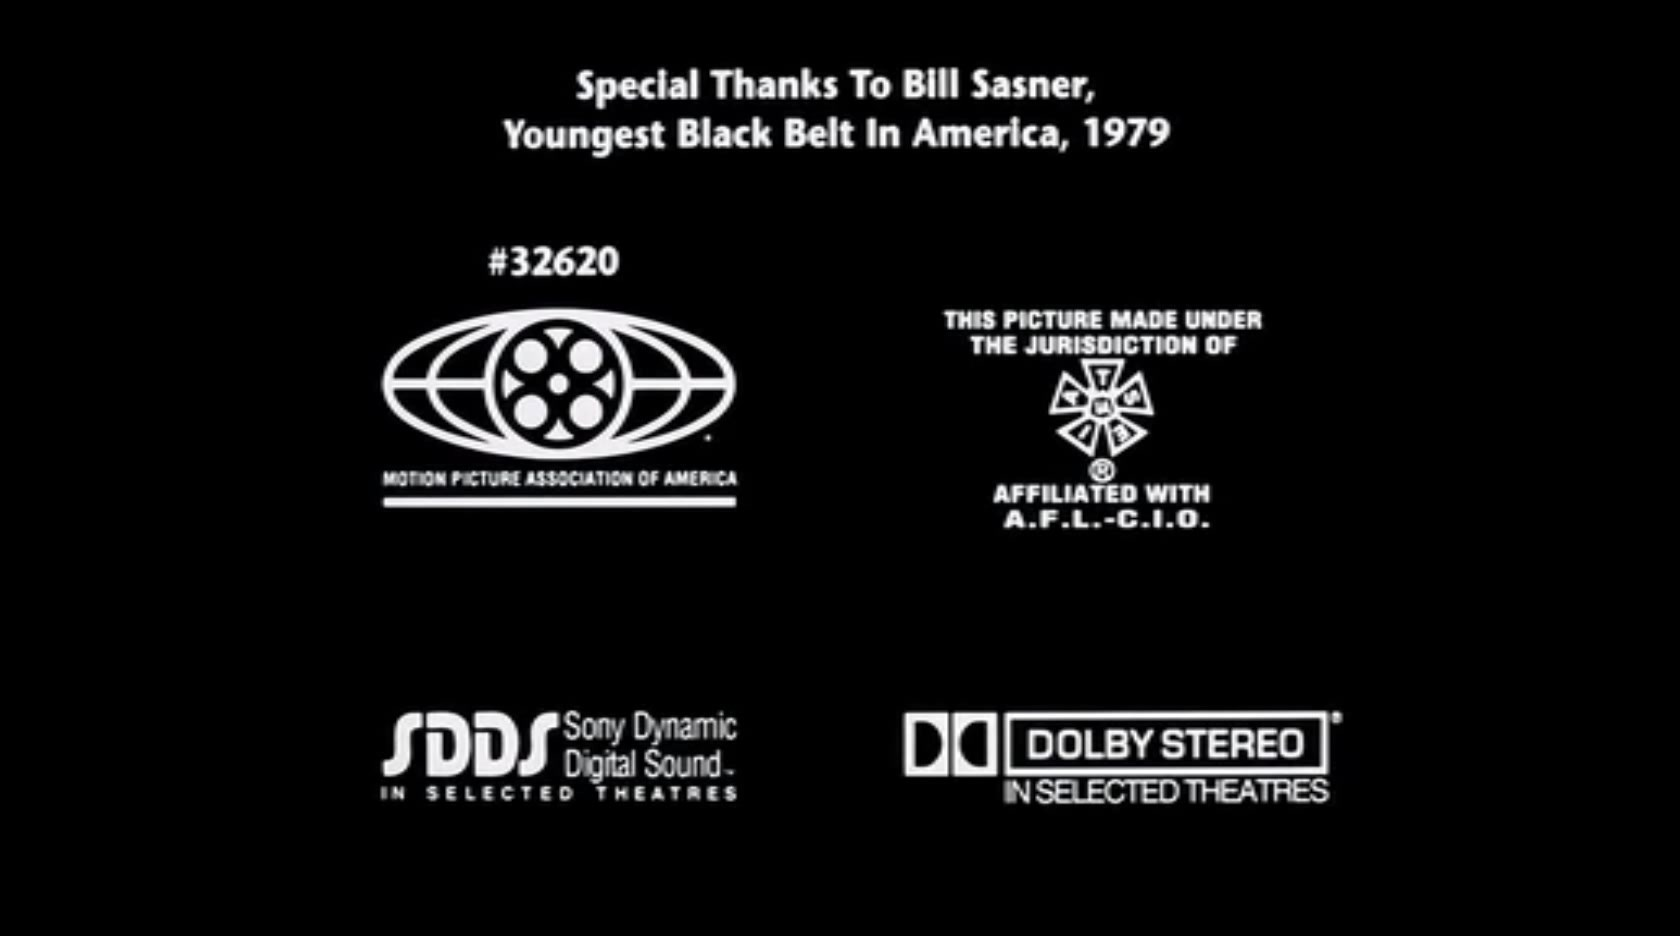 Mpaa Credits: Image - The Next Karate Kid MPAA Credits.jpg